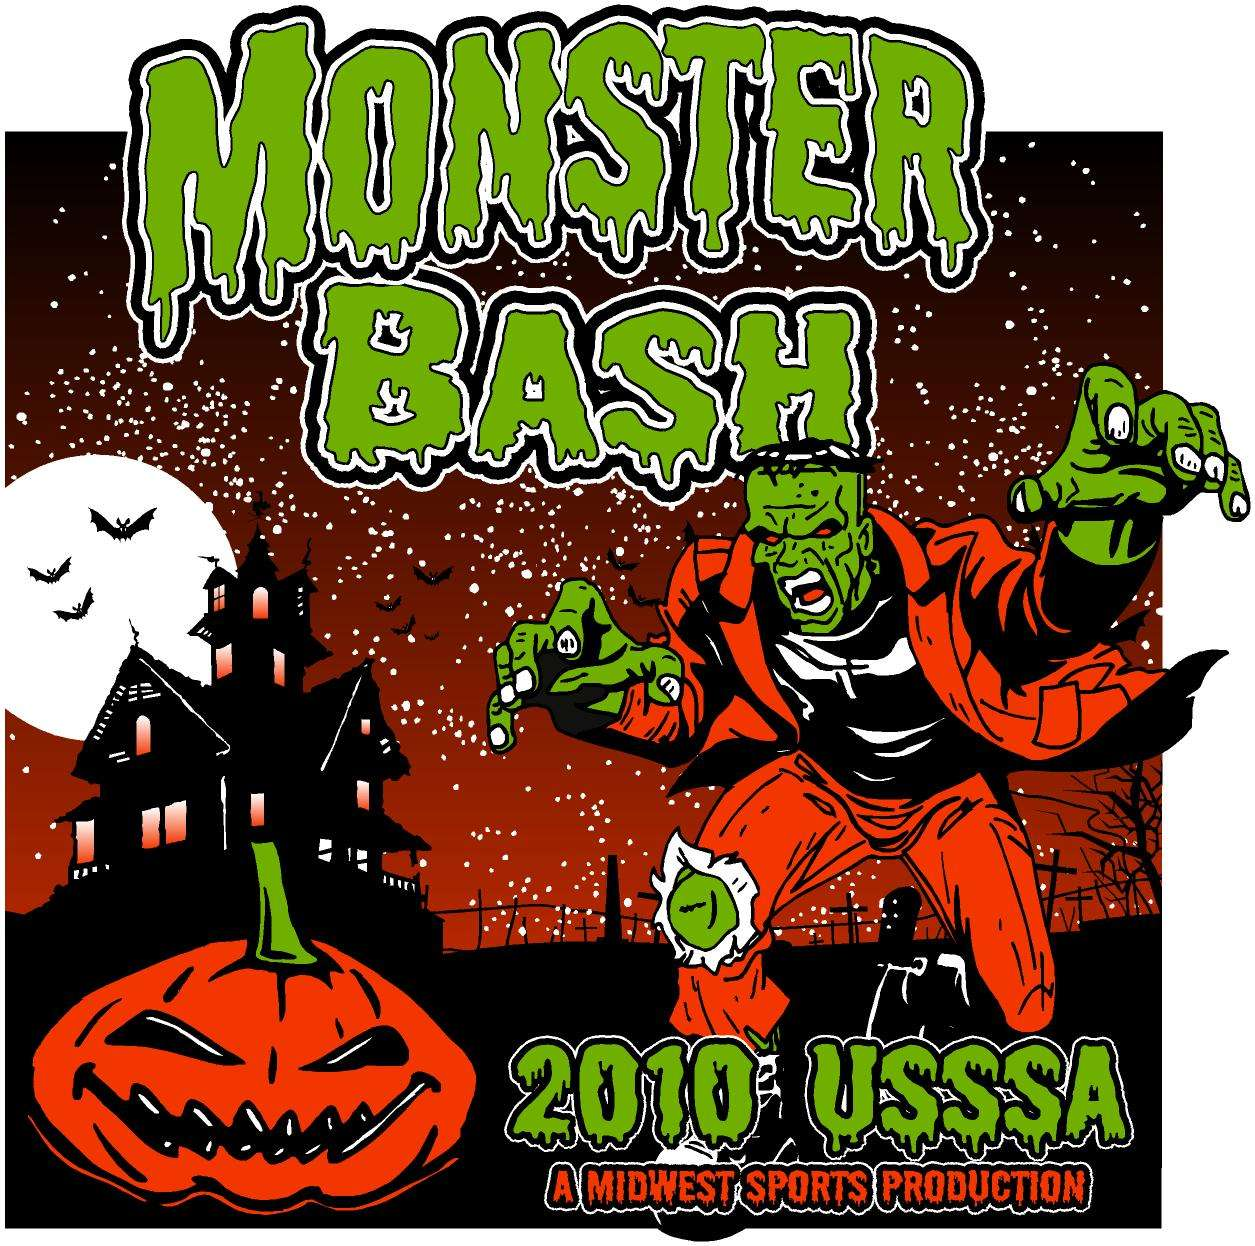 2010MonsterBash.jpg